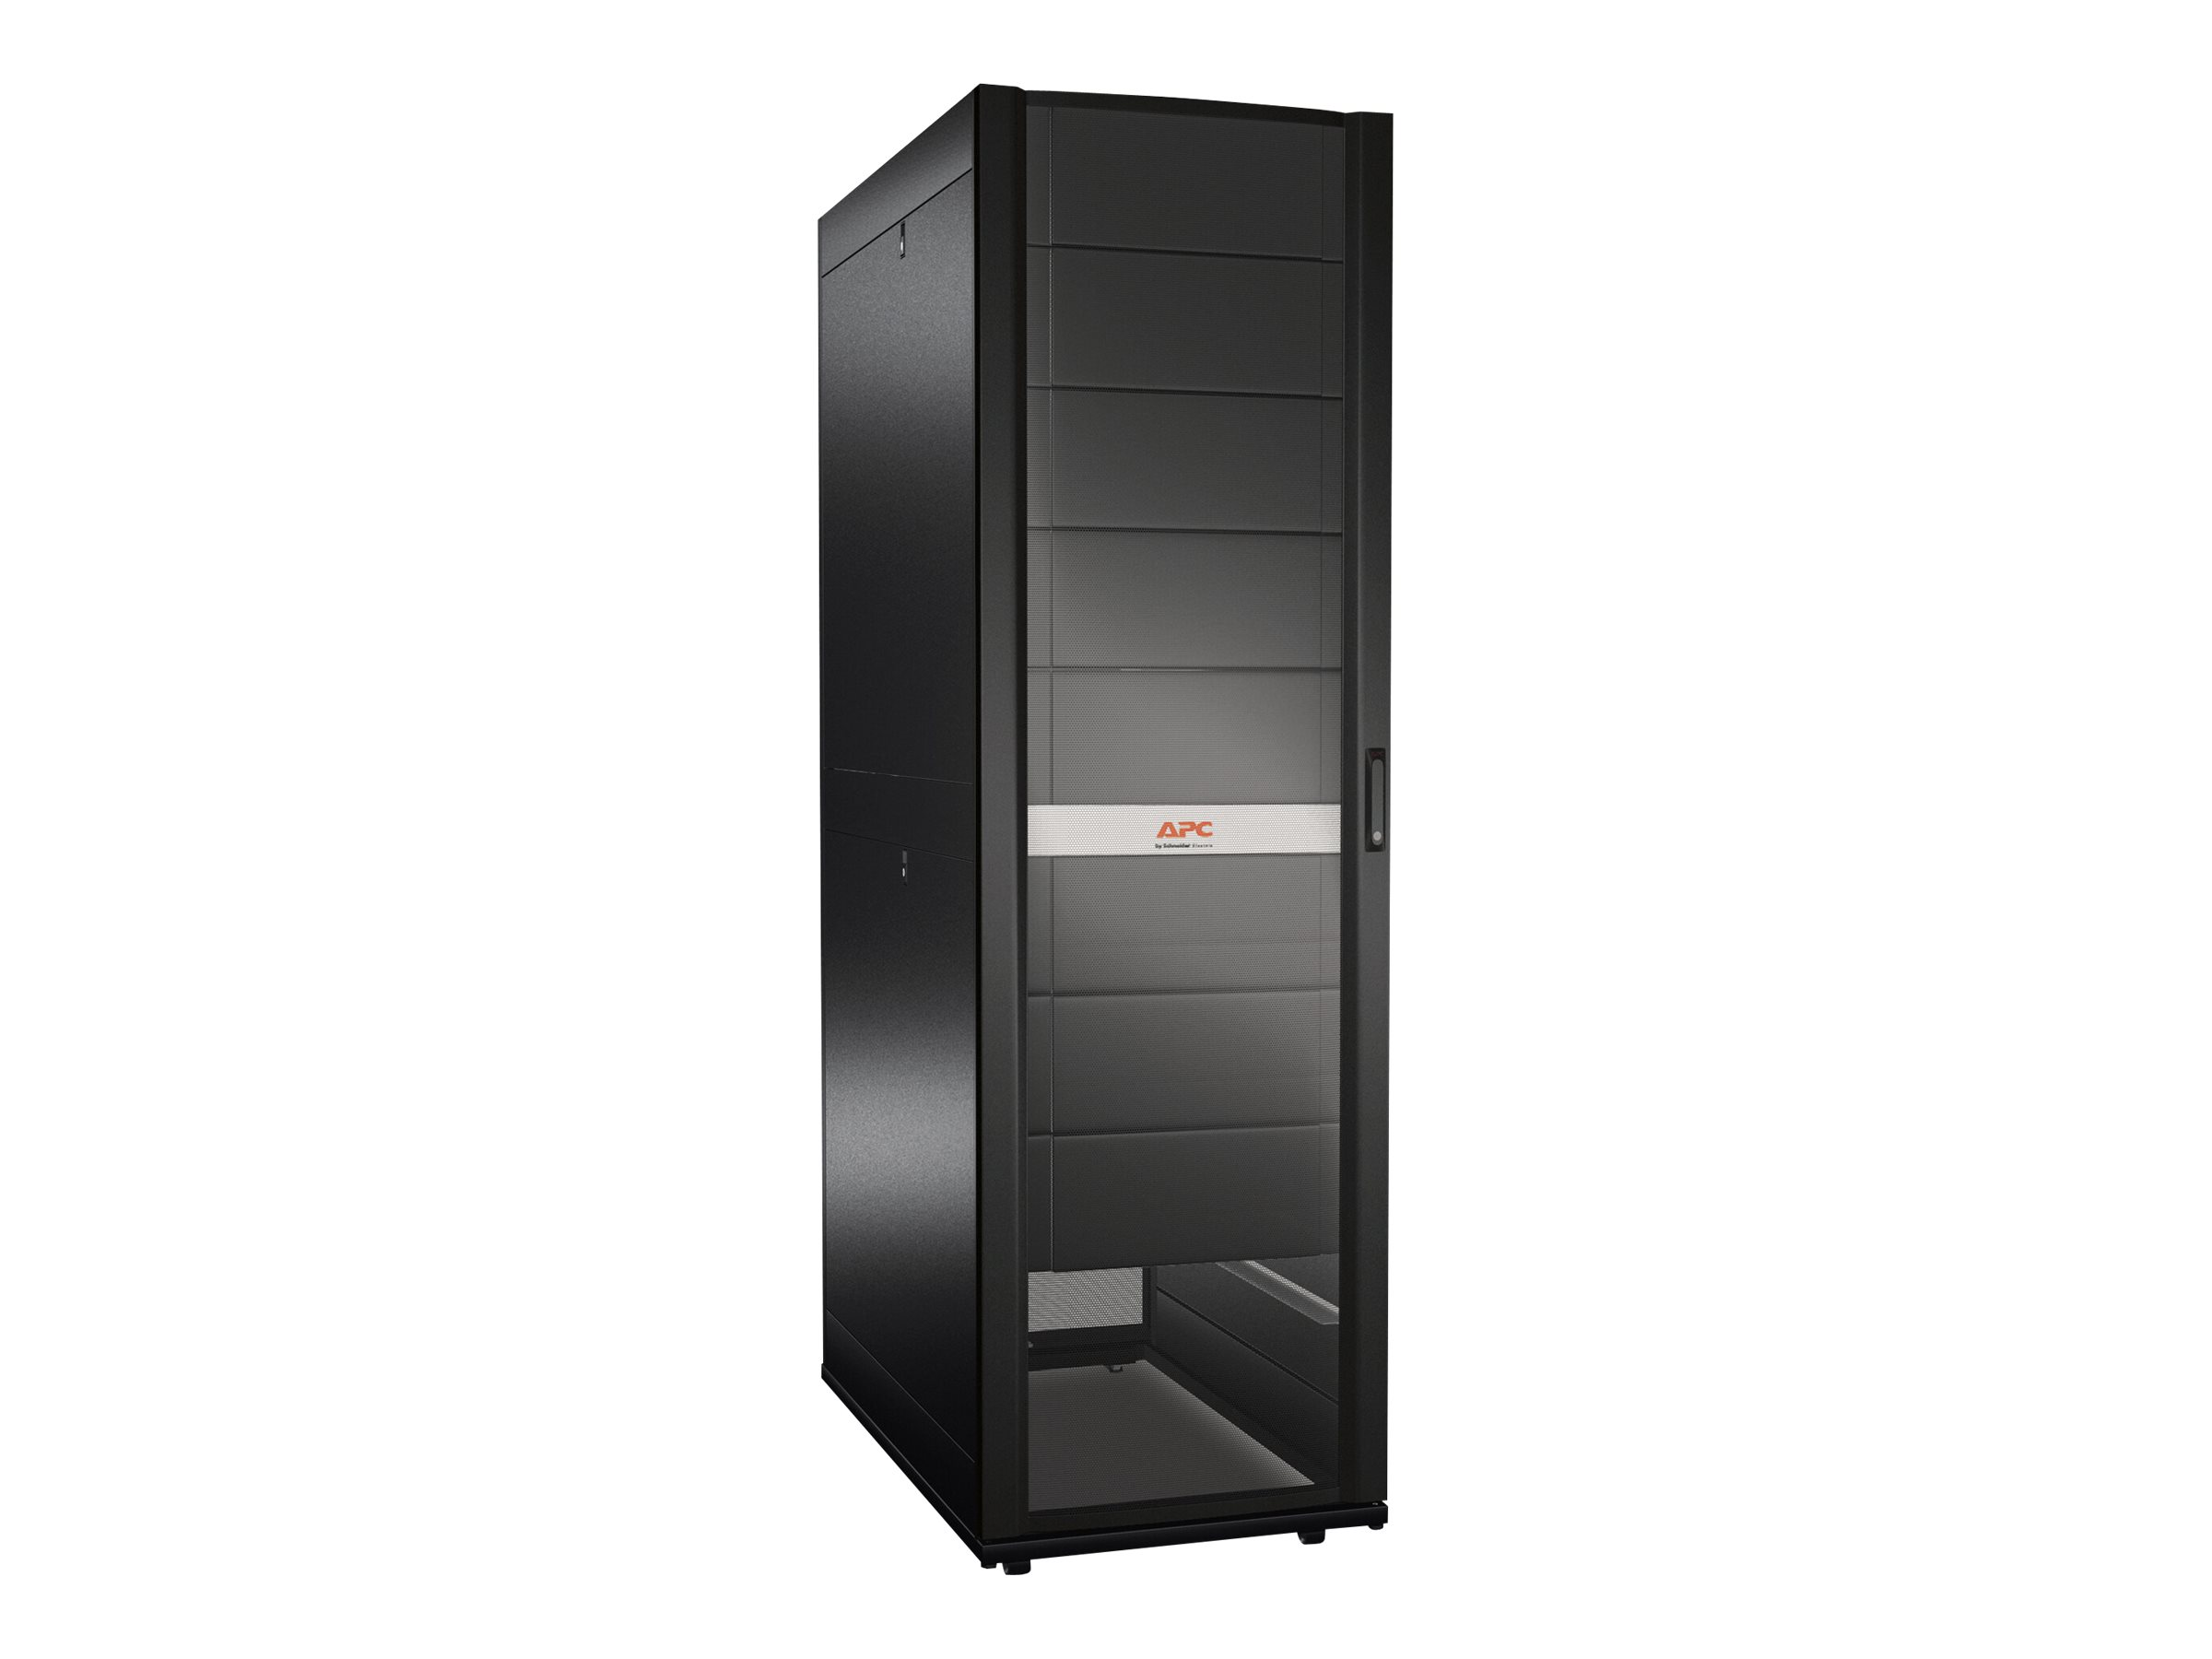 APC Symmetra PX 250kW Power Module Frame - power array cabinet